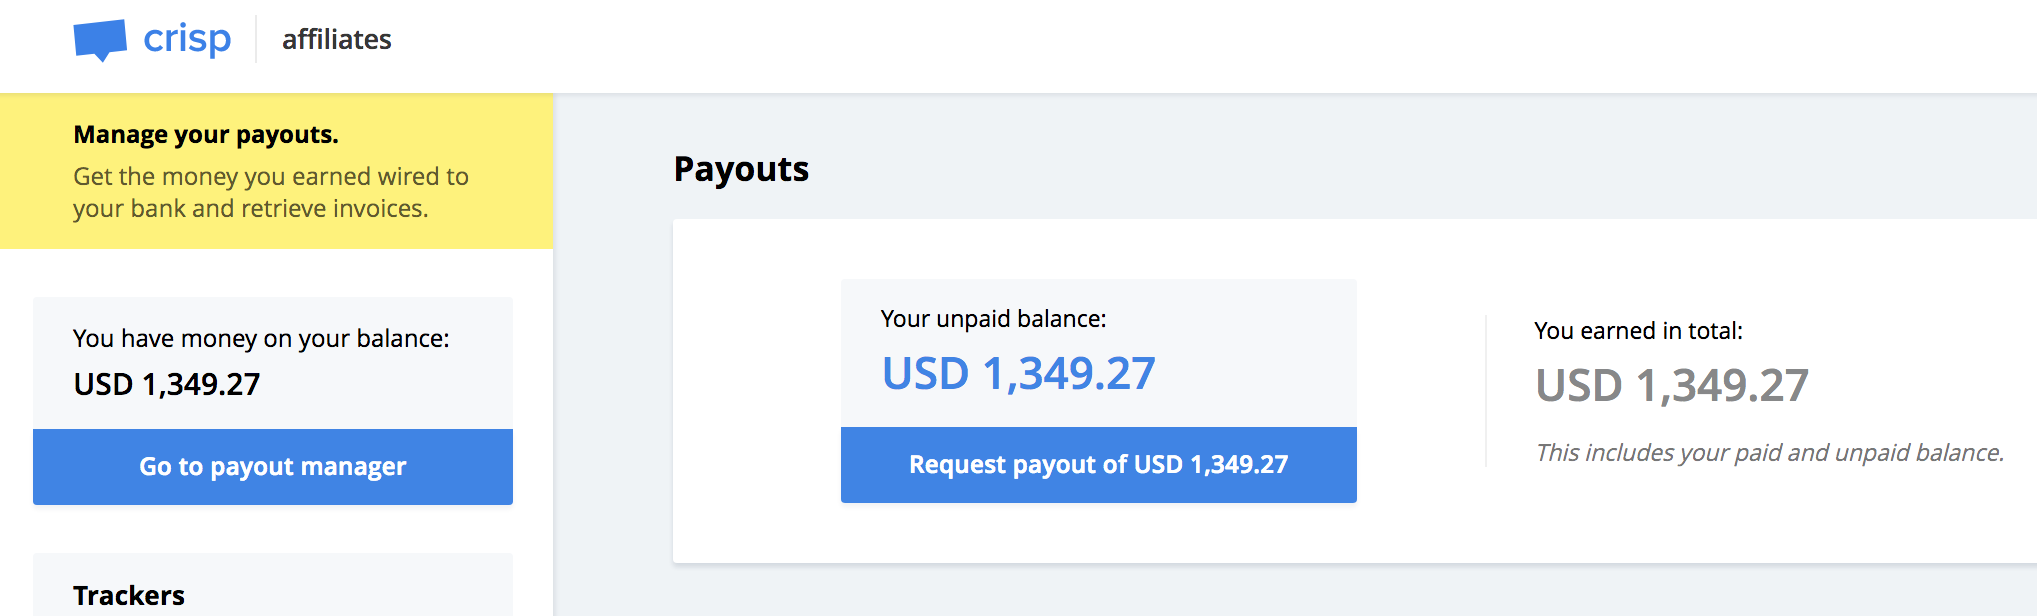 See how much money is available for payout